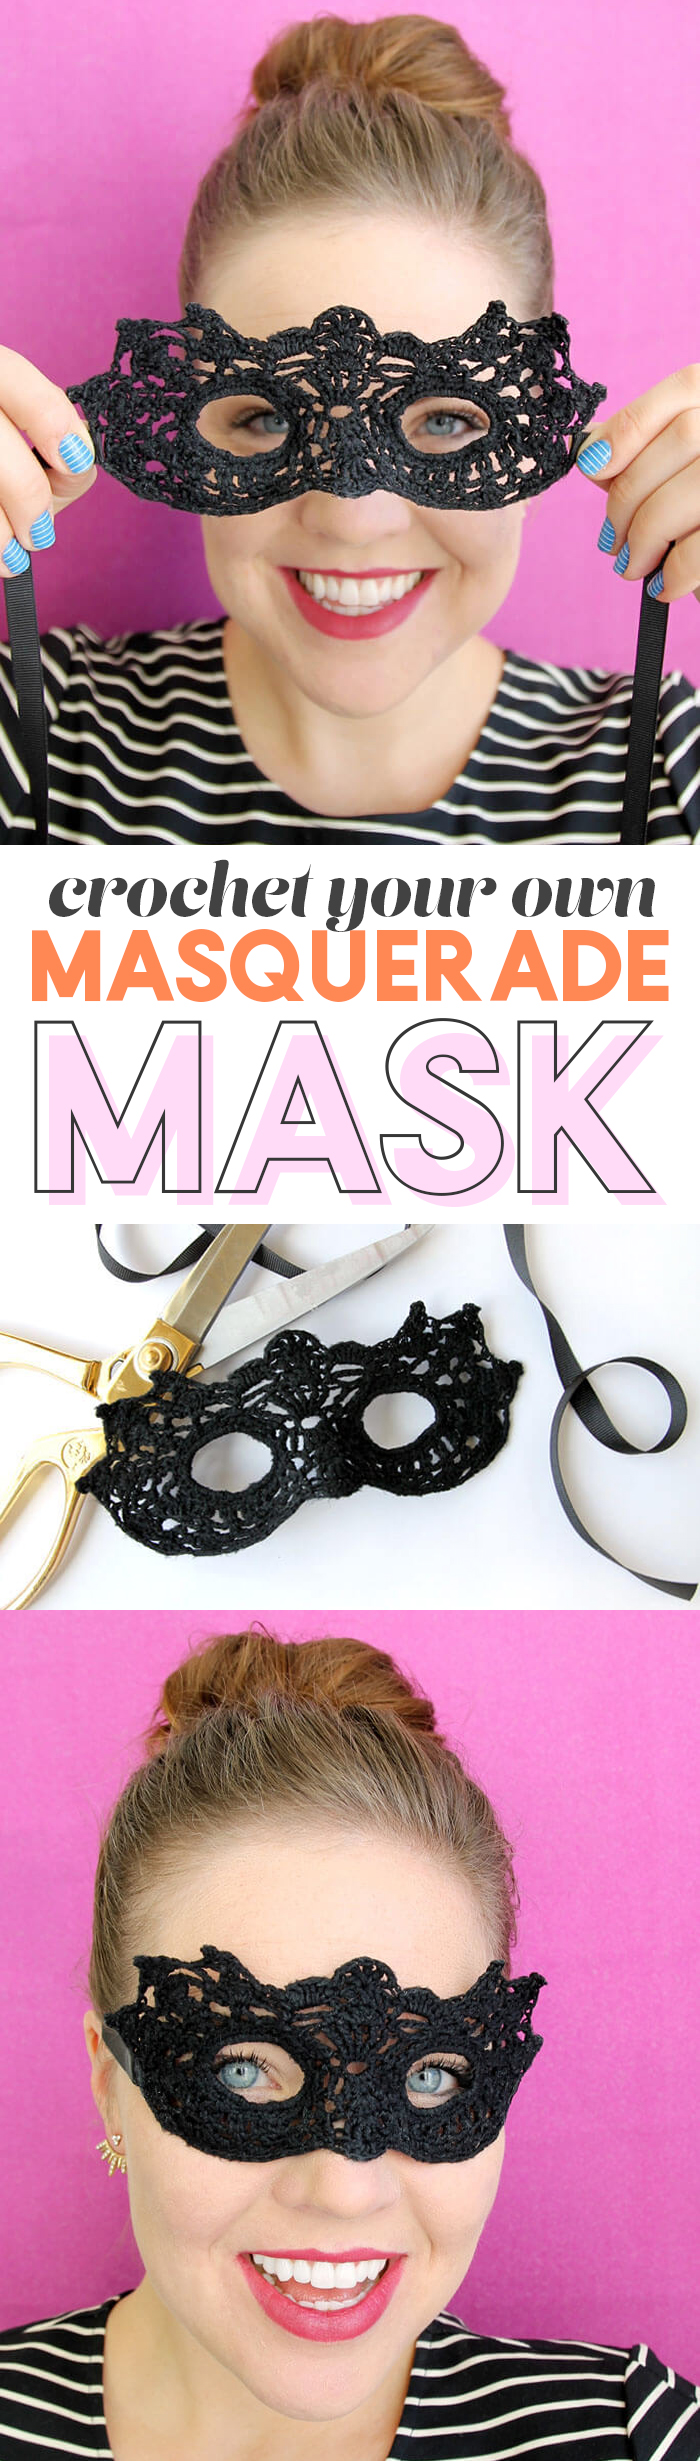 learn how to make your own crochet masquerade mask - free crochet pattern for halloween